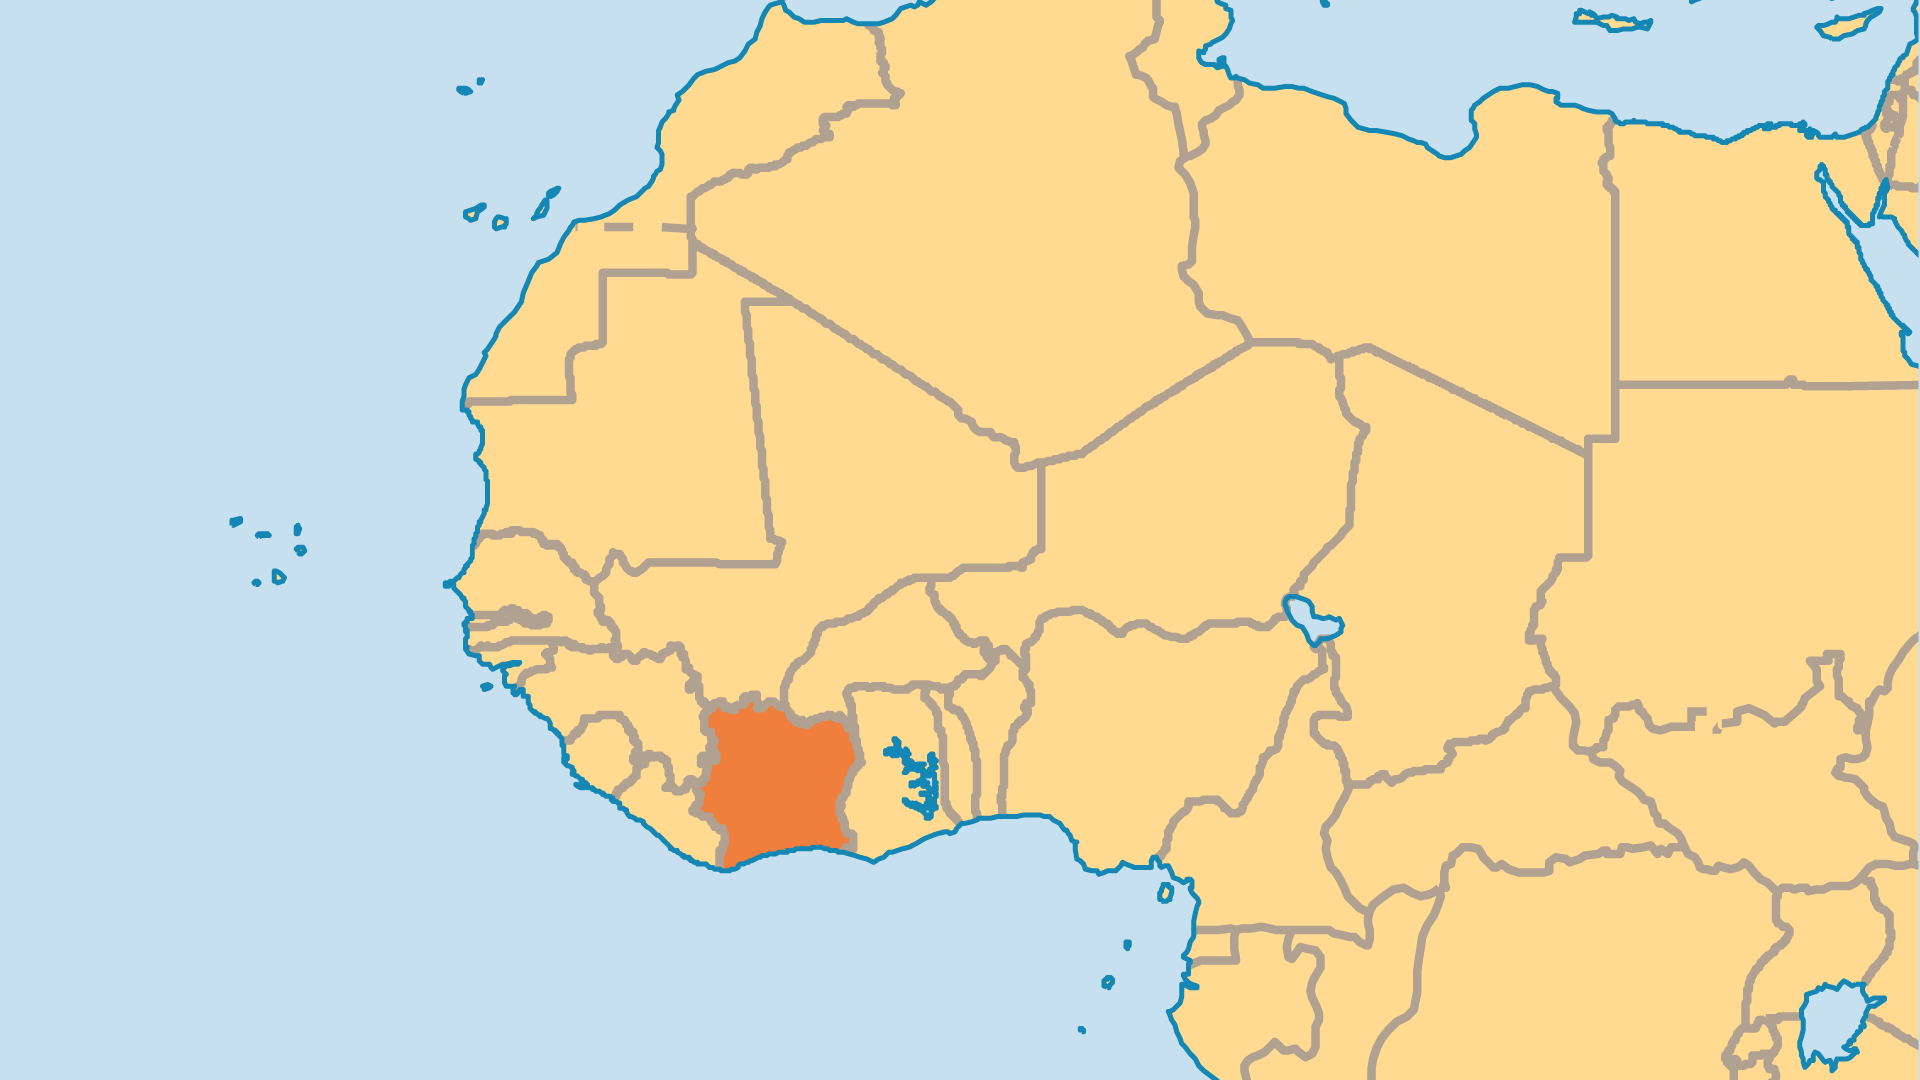 Locator Map for Cote d'Ivoire